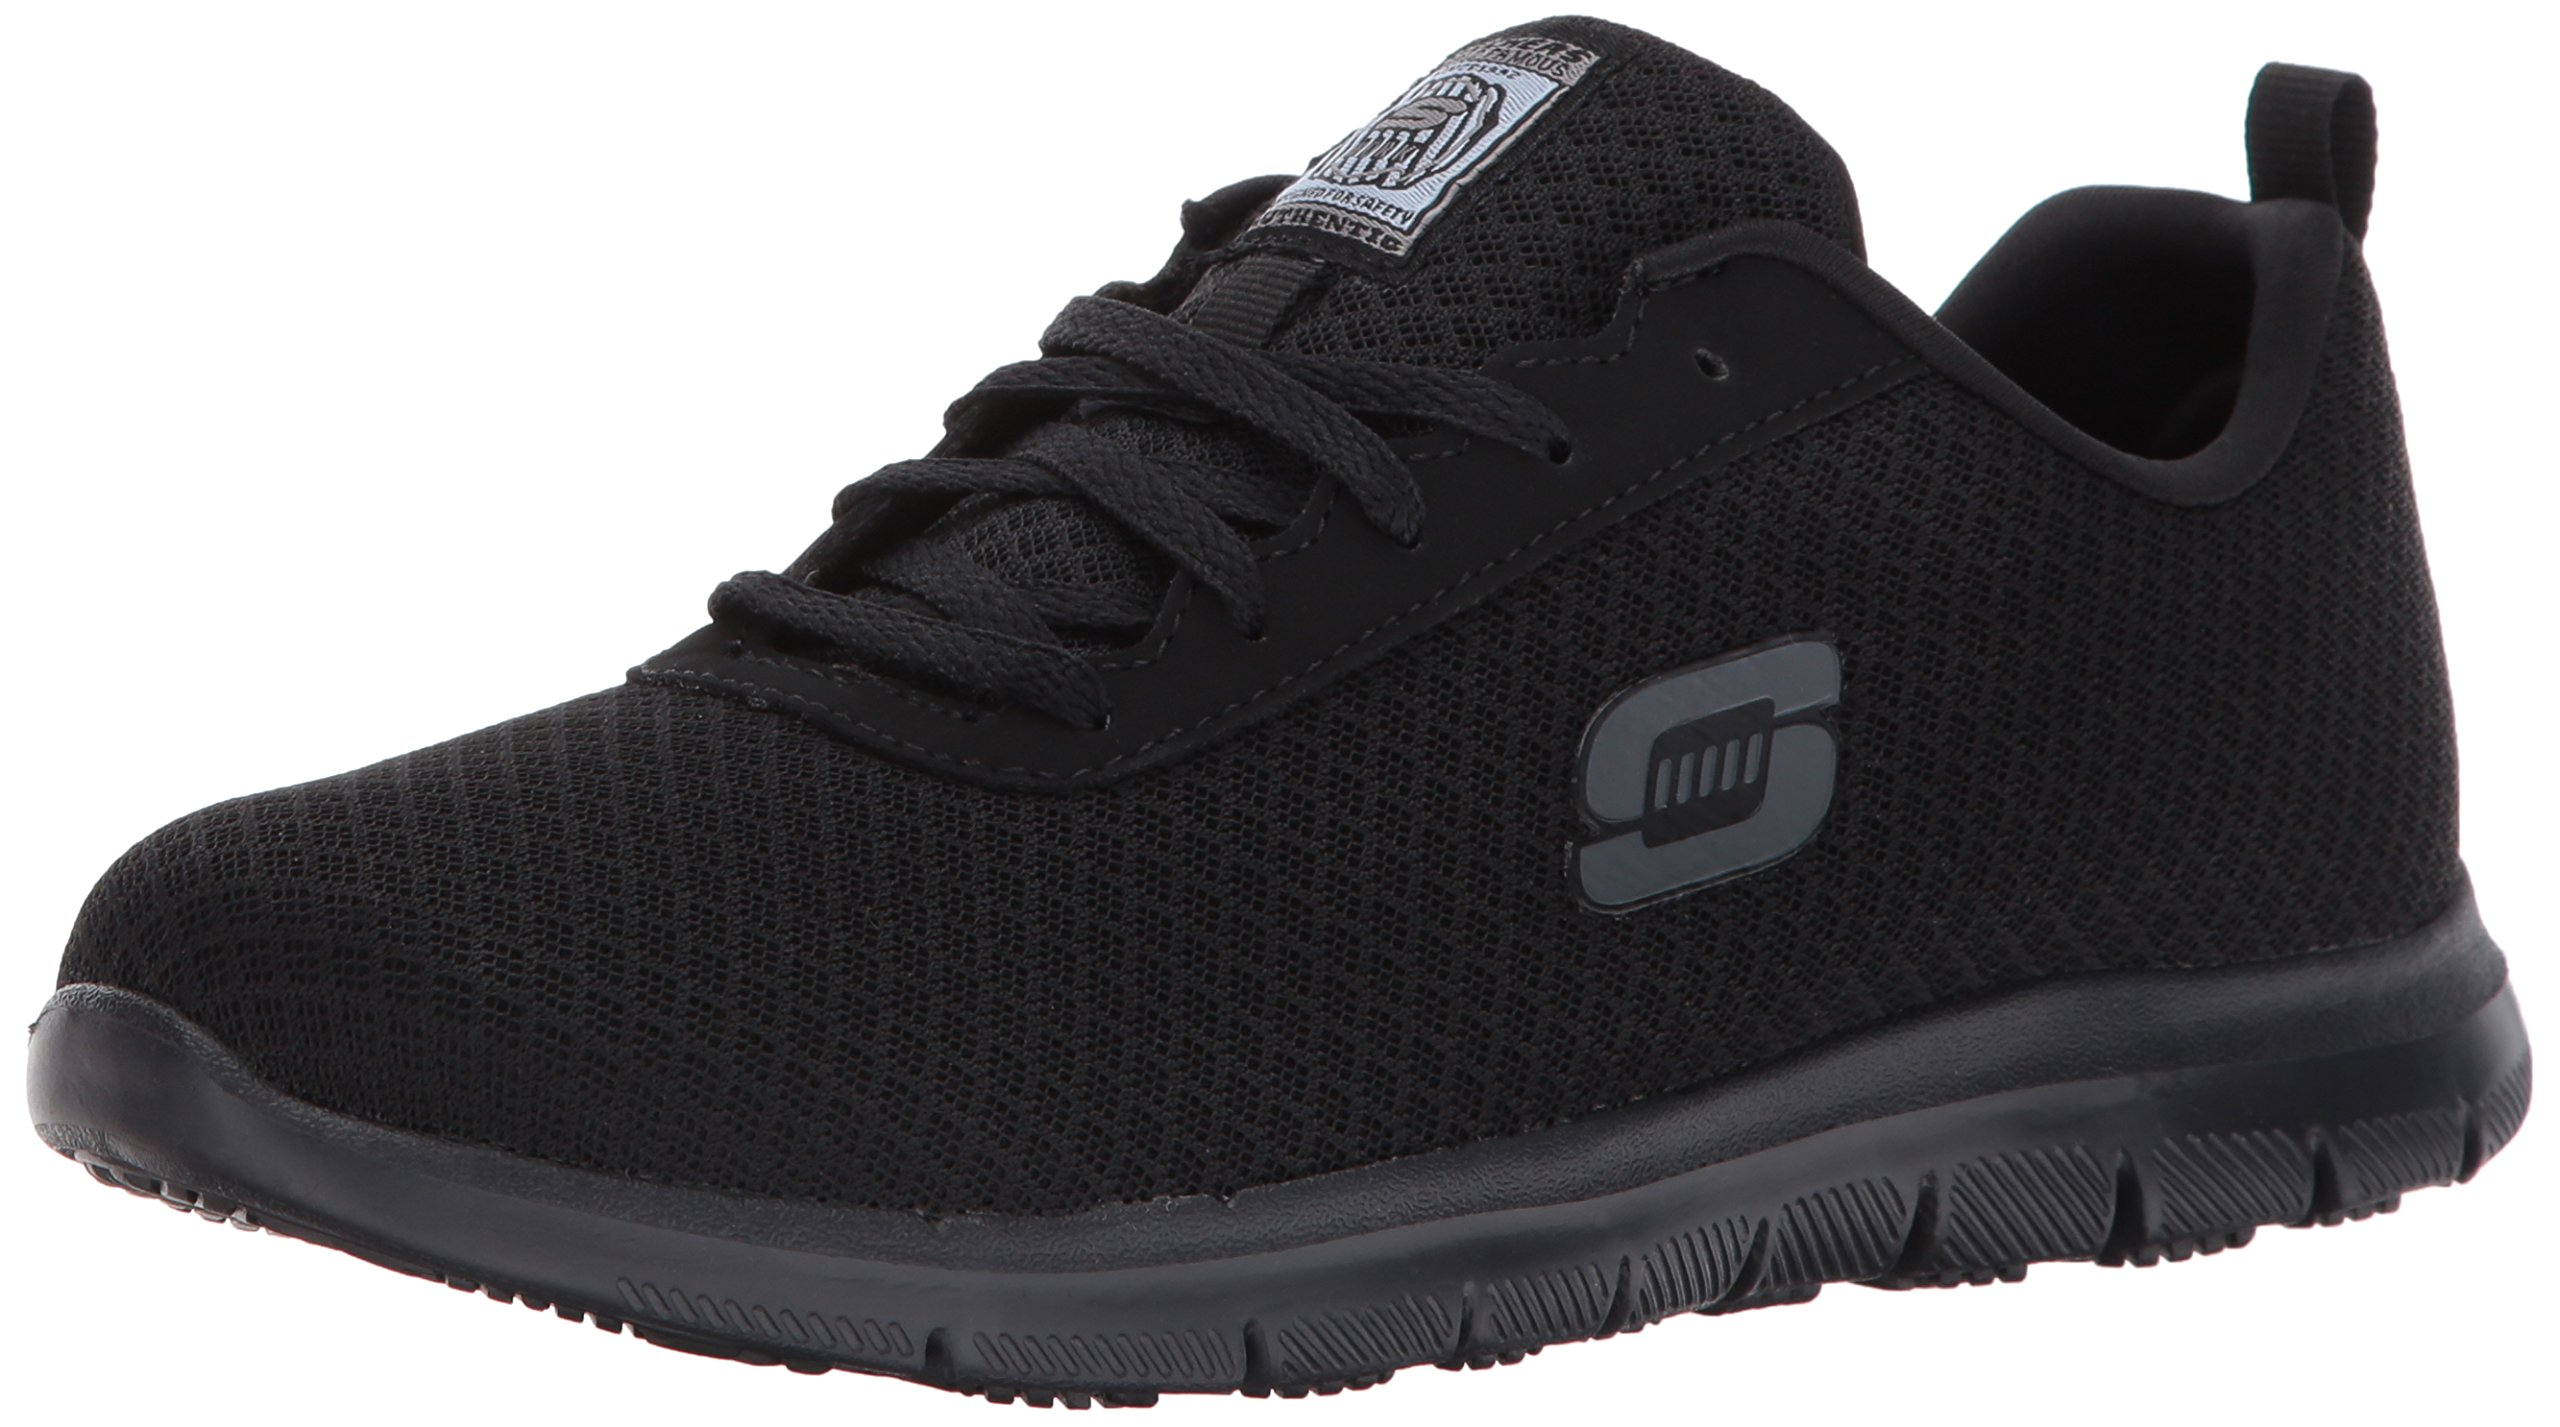 Skechers Women's Ghenter Bronaugh Food Service Shoe, Black, 10 Wide US